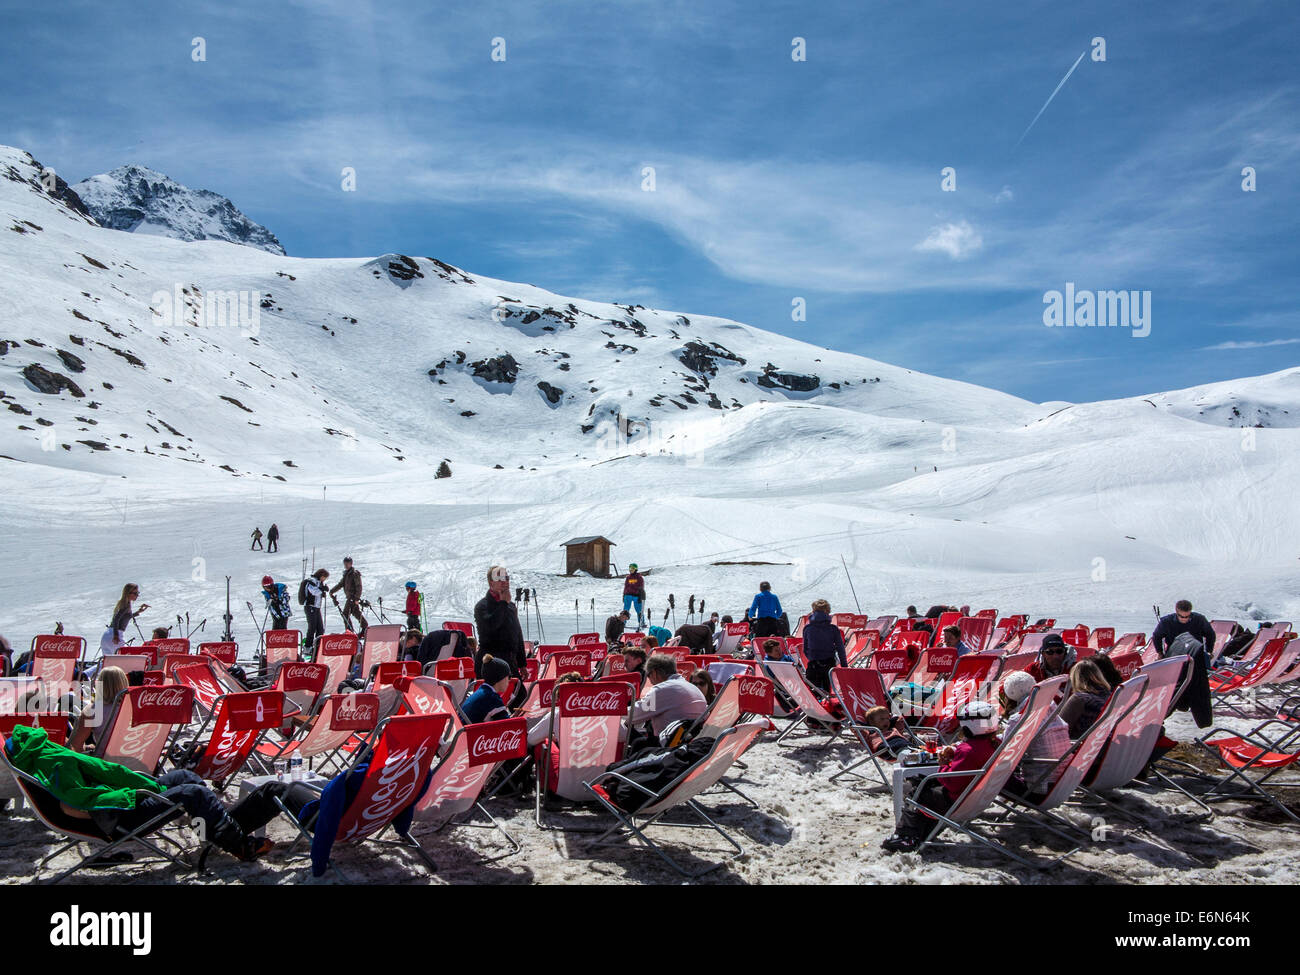 Sitting outside in the sunshine on the mountain in Les Arcs 2000 ski resort, Les Arcs, Savoie, Rhone Alpes, France - Stock Image